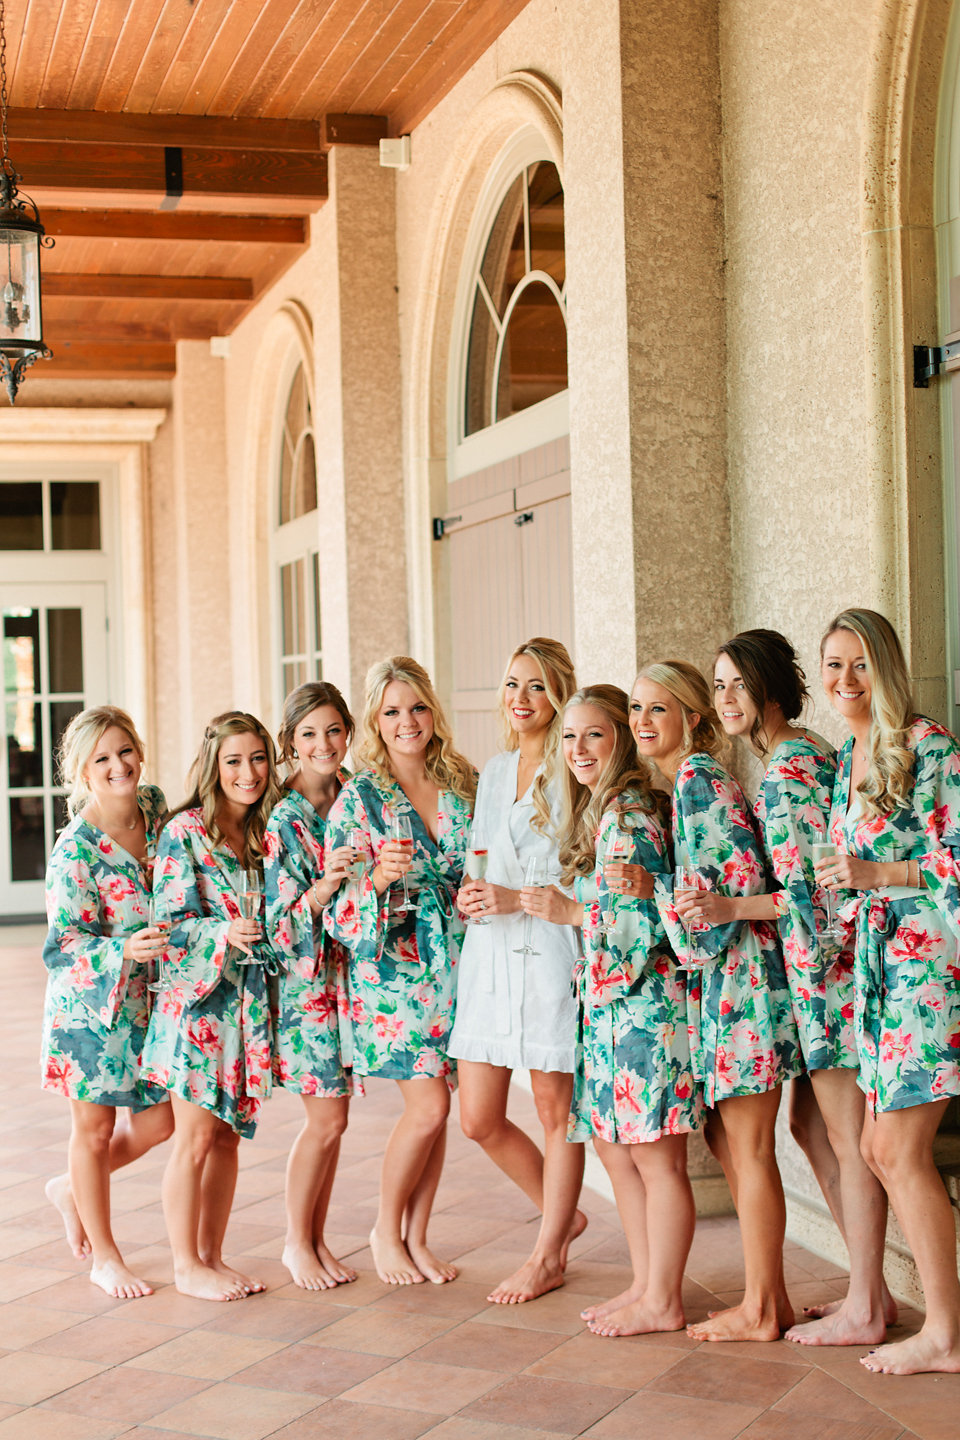 Floral Bridal Party Robes  Blush Wedding at TPC Sawgrass Wedding Ponte Vedra Beach  Jacksonville Wedding Planner Blue Ribbon Weddings  Jacksonville Wedding Photographer Debra Eby Photography  Wedding Ceremony & Reception at TPC Sawgrass Jacksonville